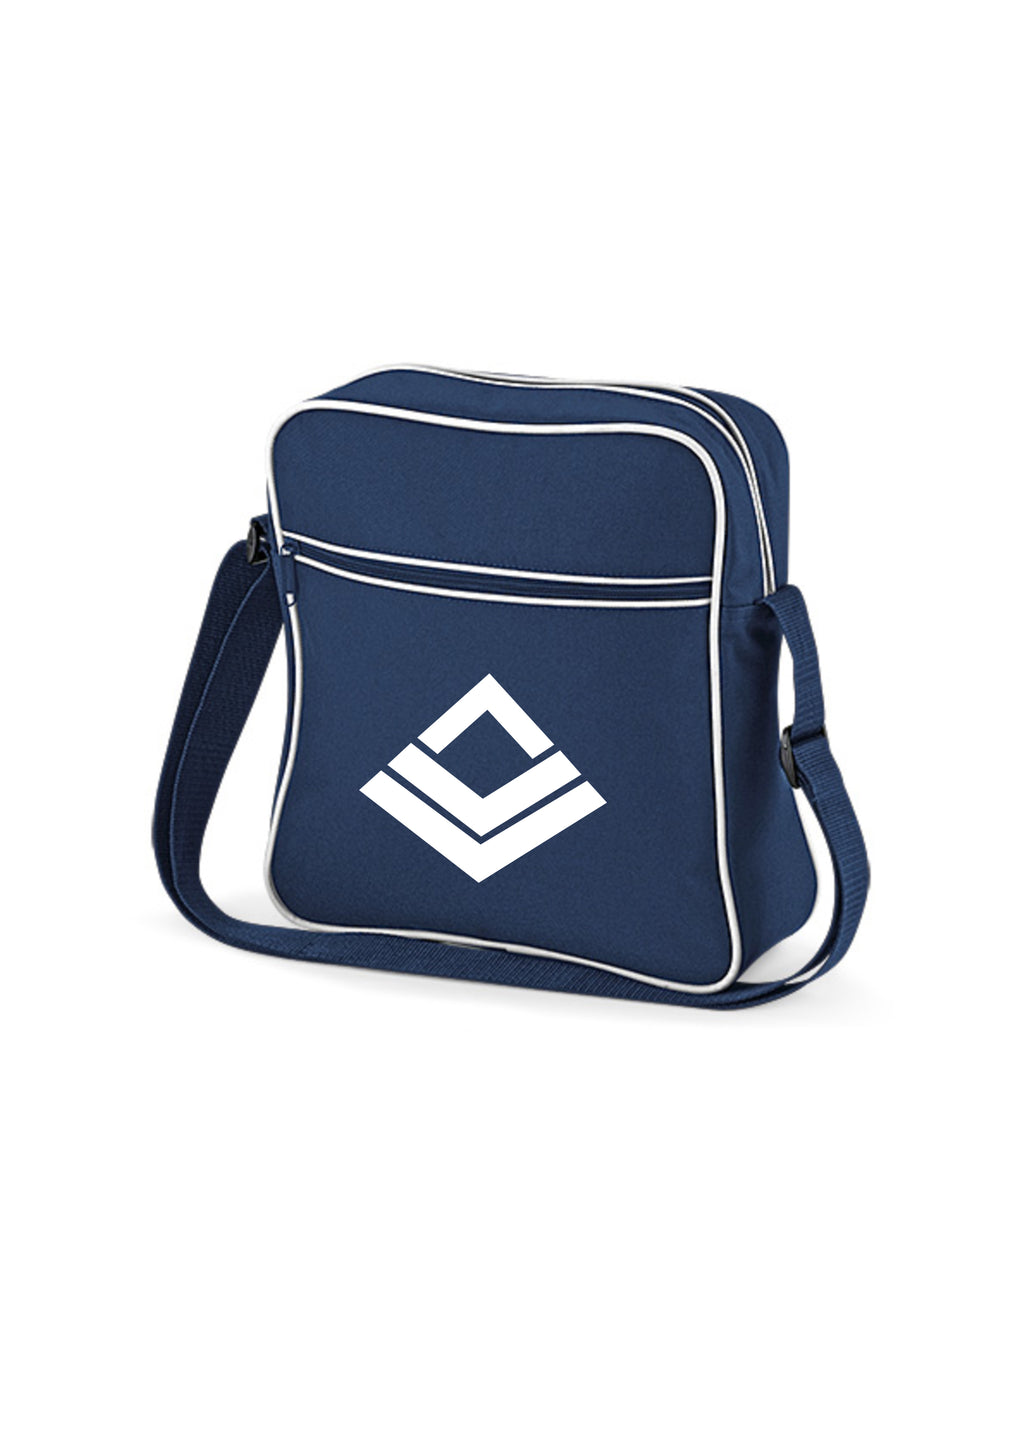 Swaggerlicious Active Navy Blue and White Flight Bag - swaggerlicious-clothing.com